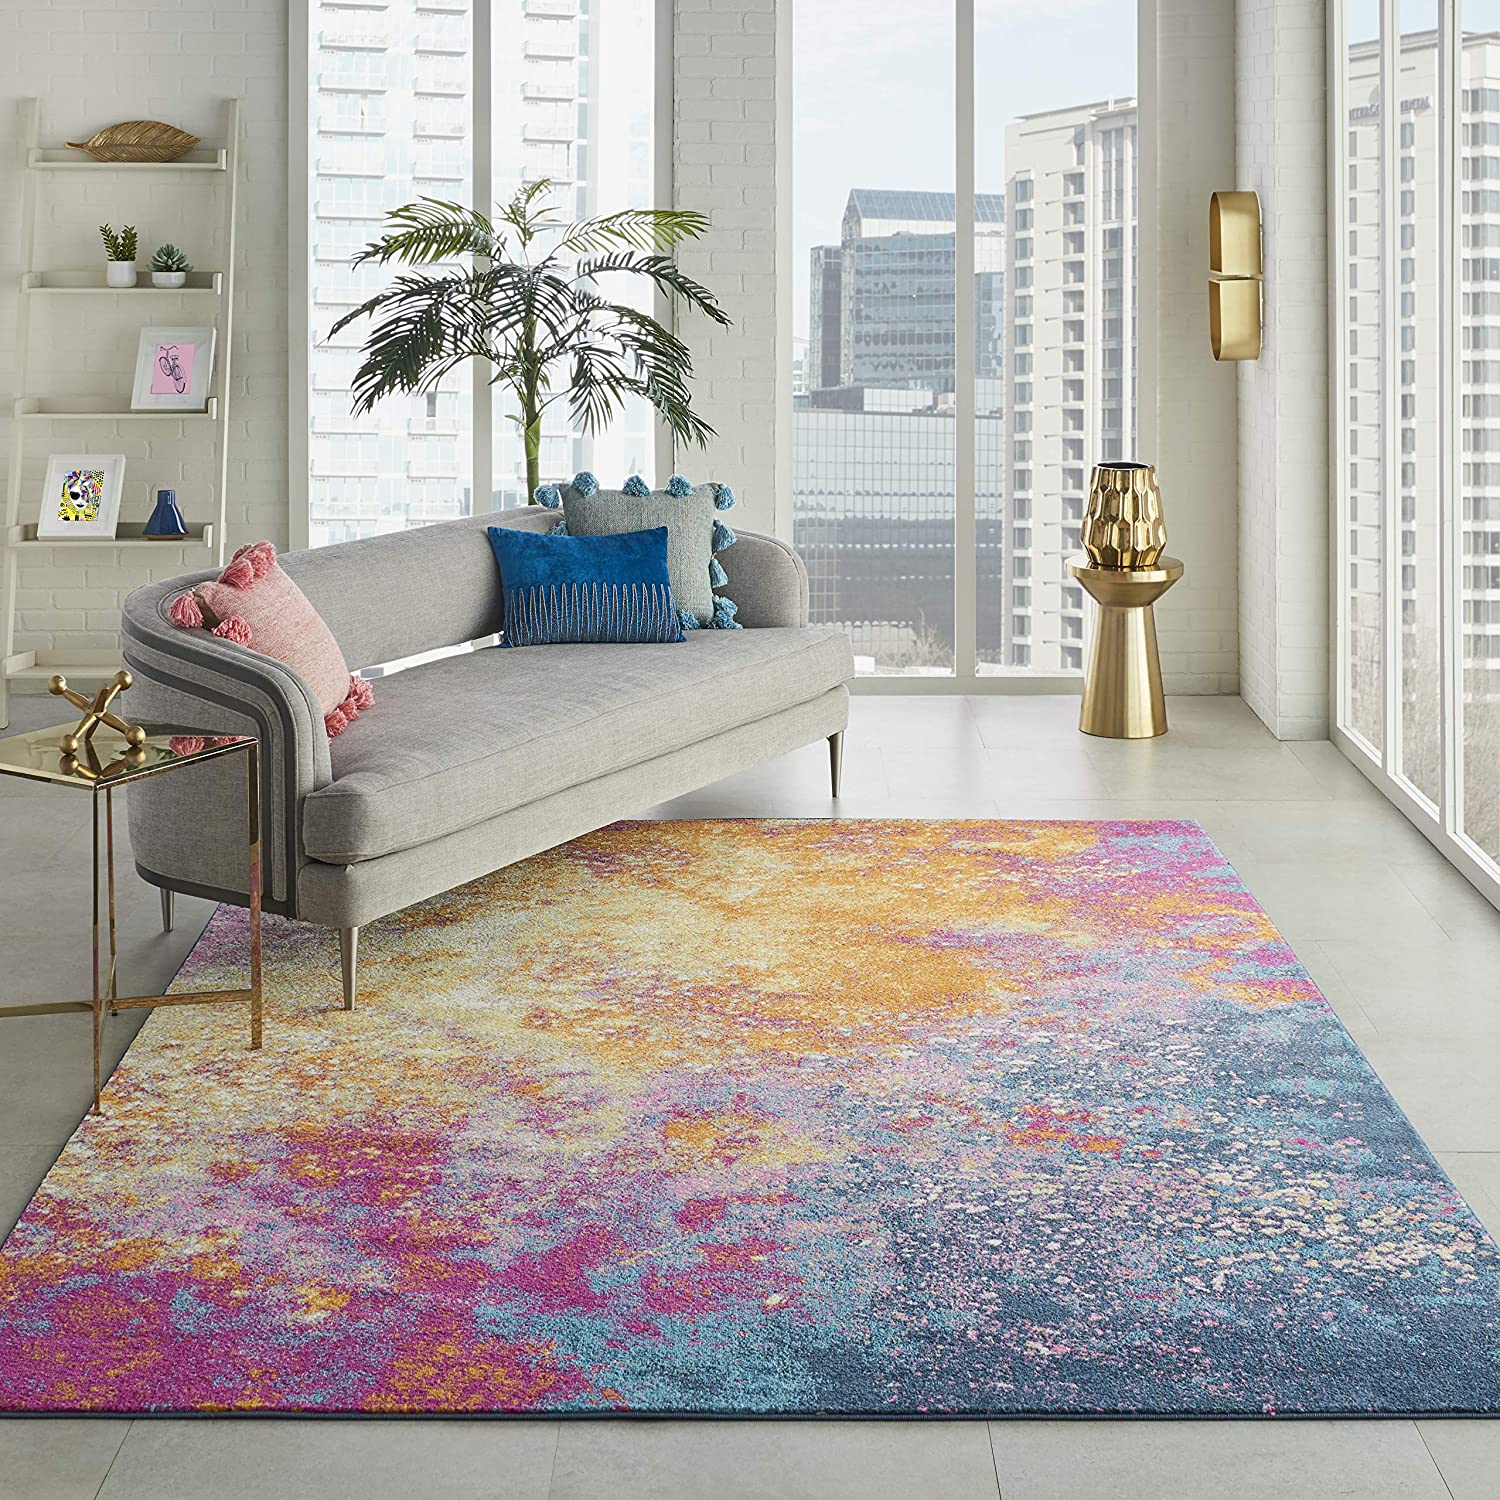 NourisonPassion Modern Abstract Colorful Sunburst Area Rug, 8' x10'